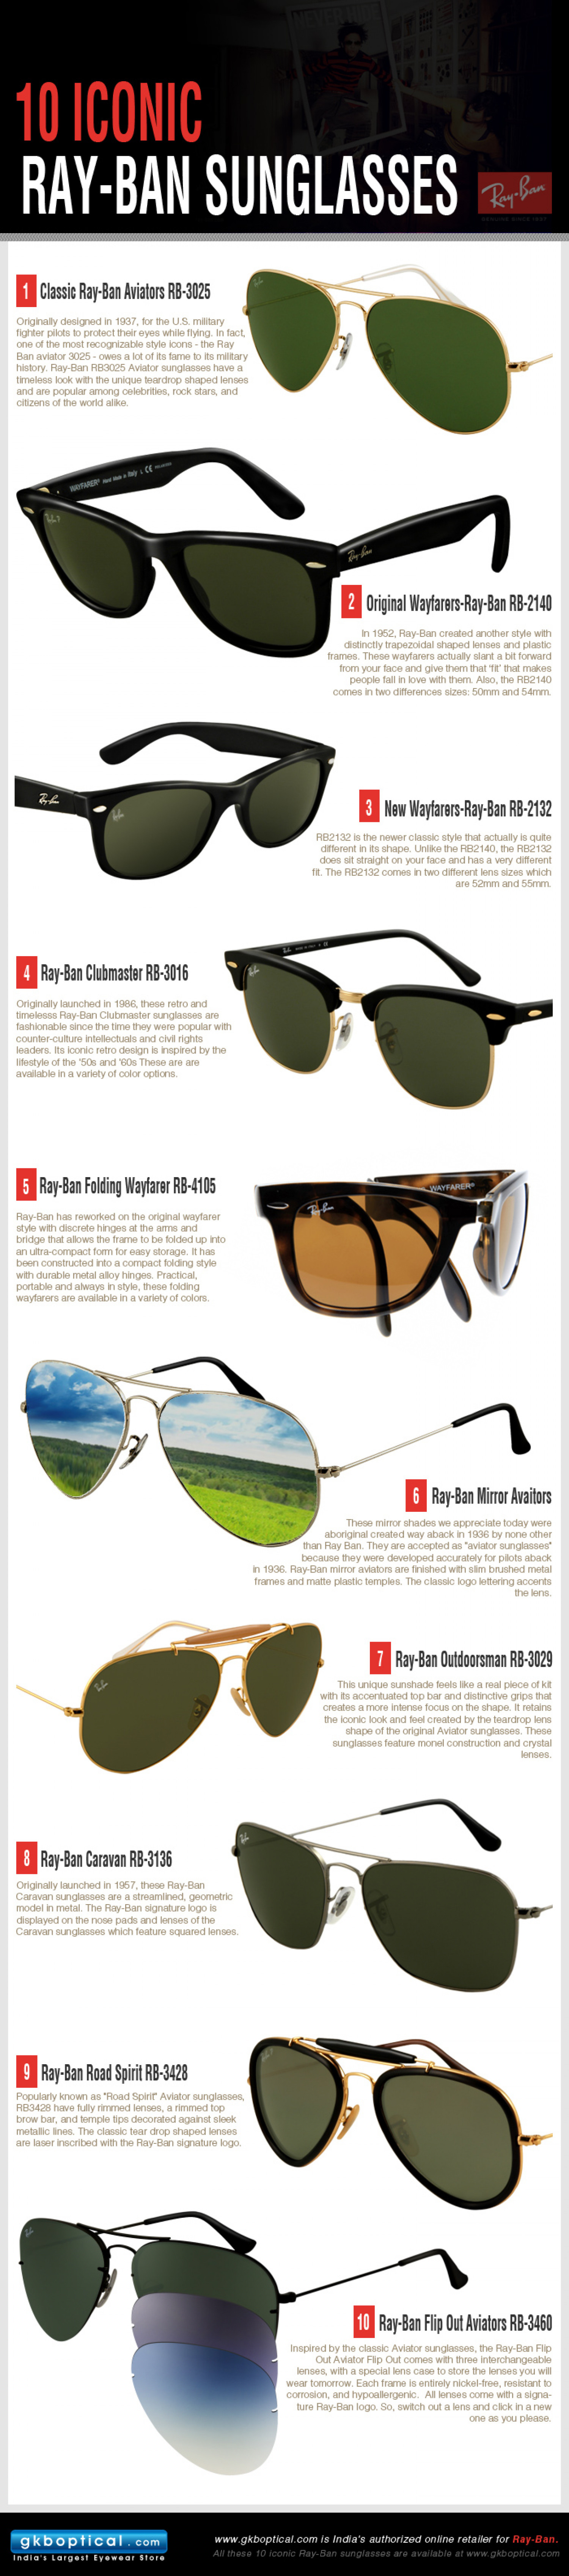 Take A Peek At The Top 10 Ray-Ban Sunglasses Infographic